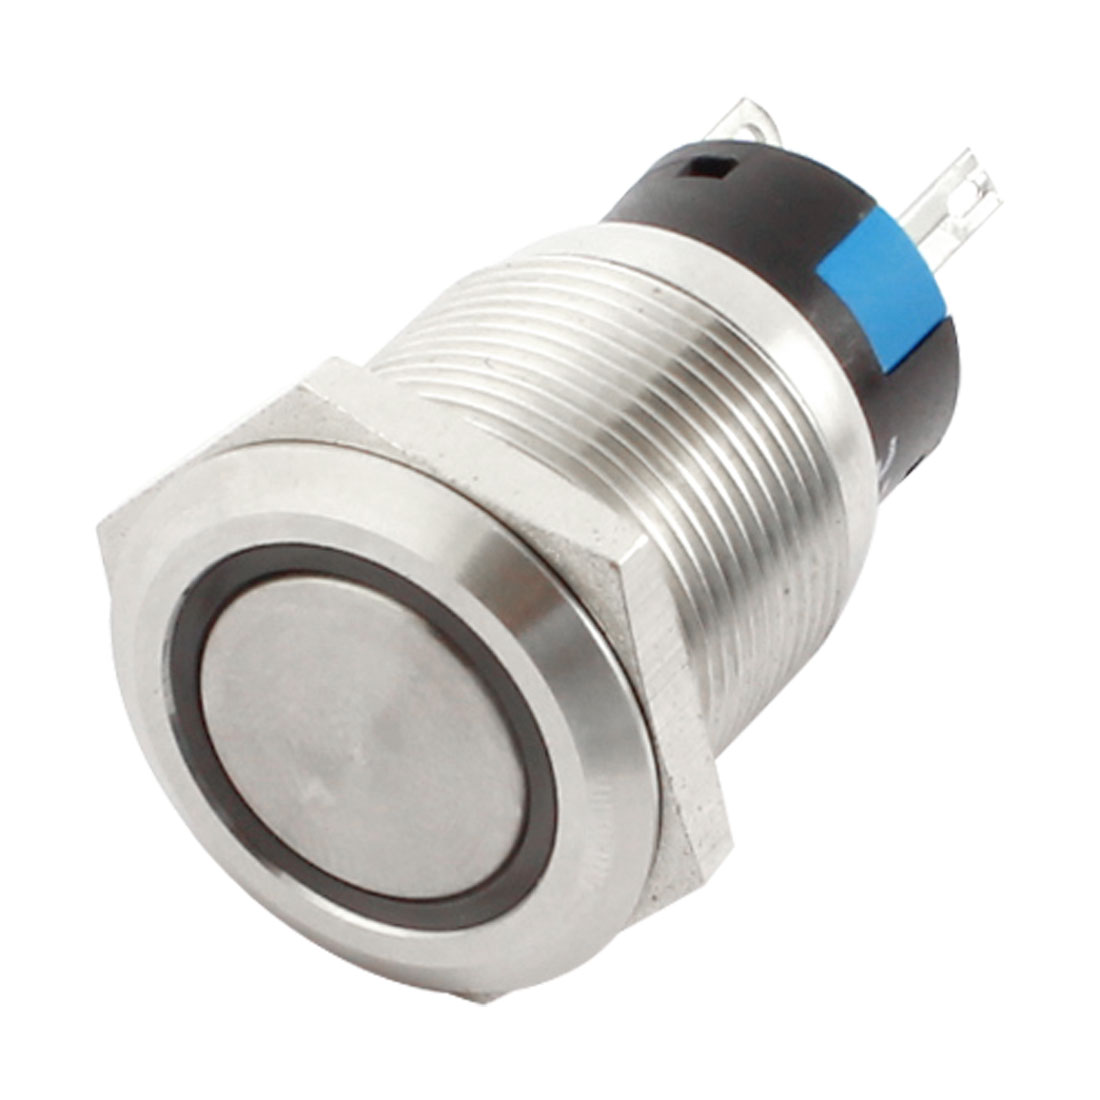 DC24V 19mm SPDT 5Pin Latching Control White LED Angel Eye Stainless Steel Pushbutton Switch